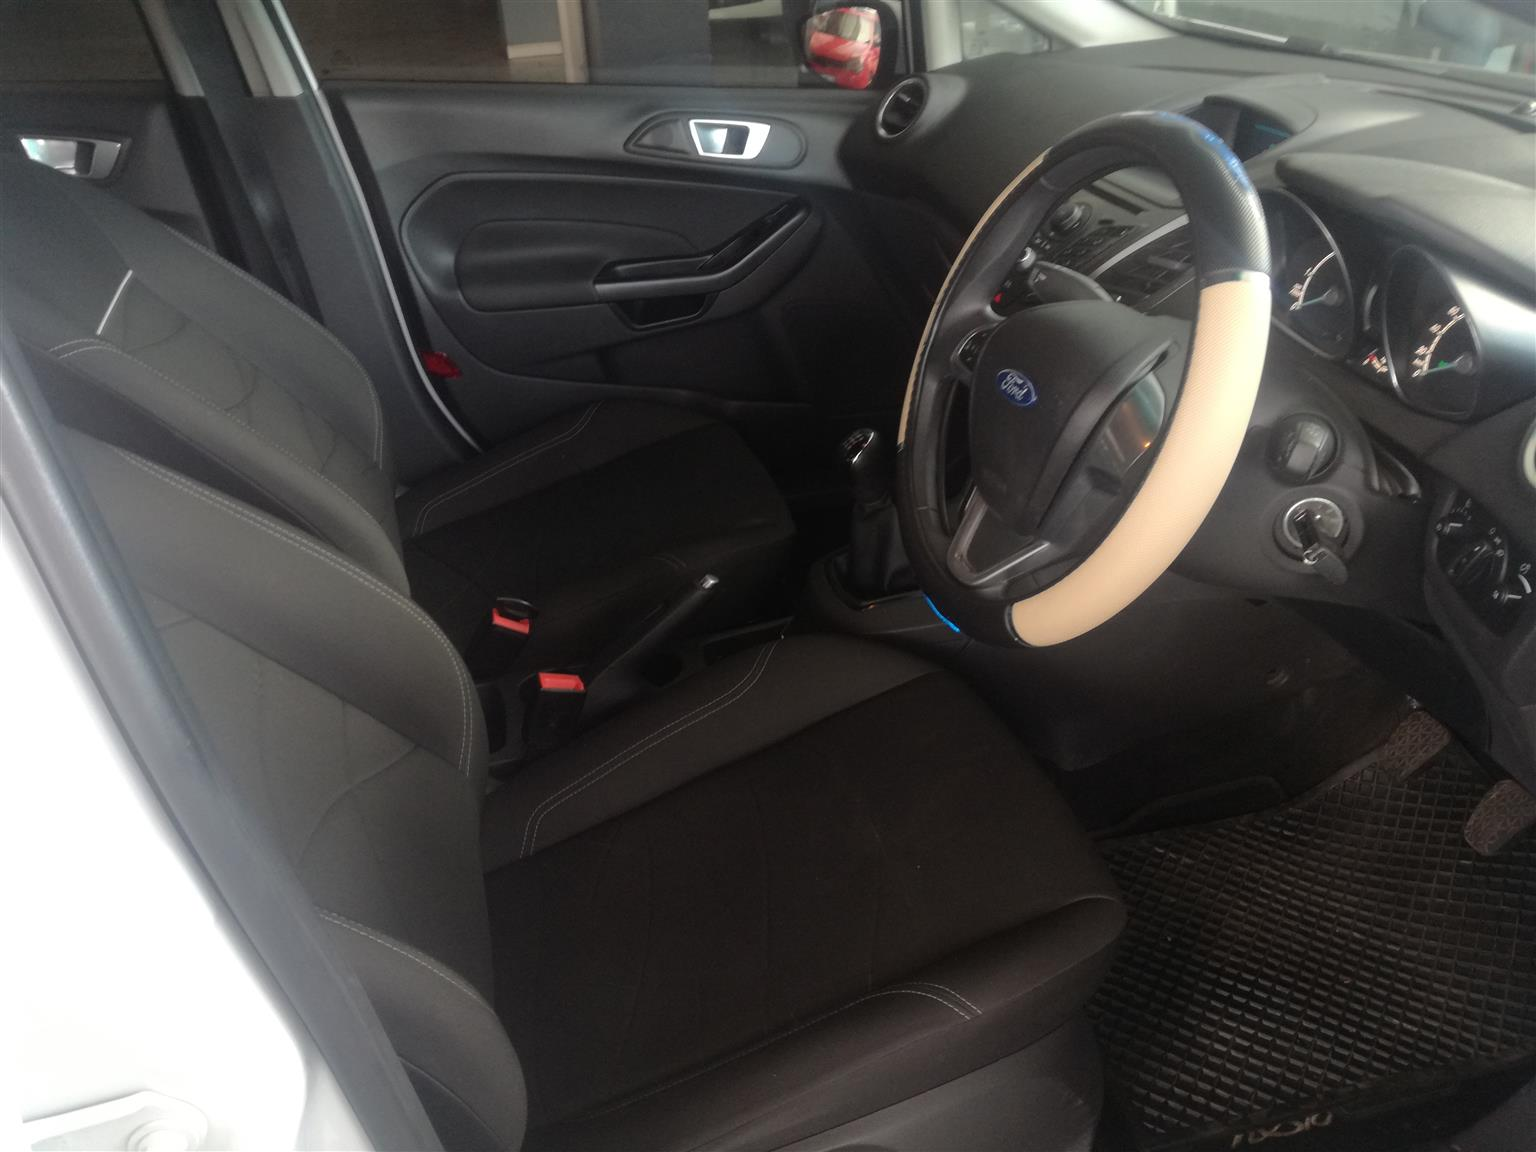 2013 Ford Fiesta 1.6 5 door Ambiente